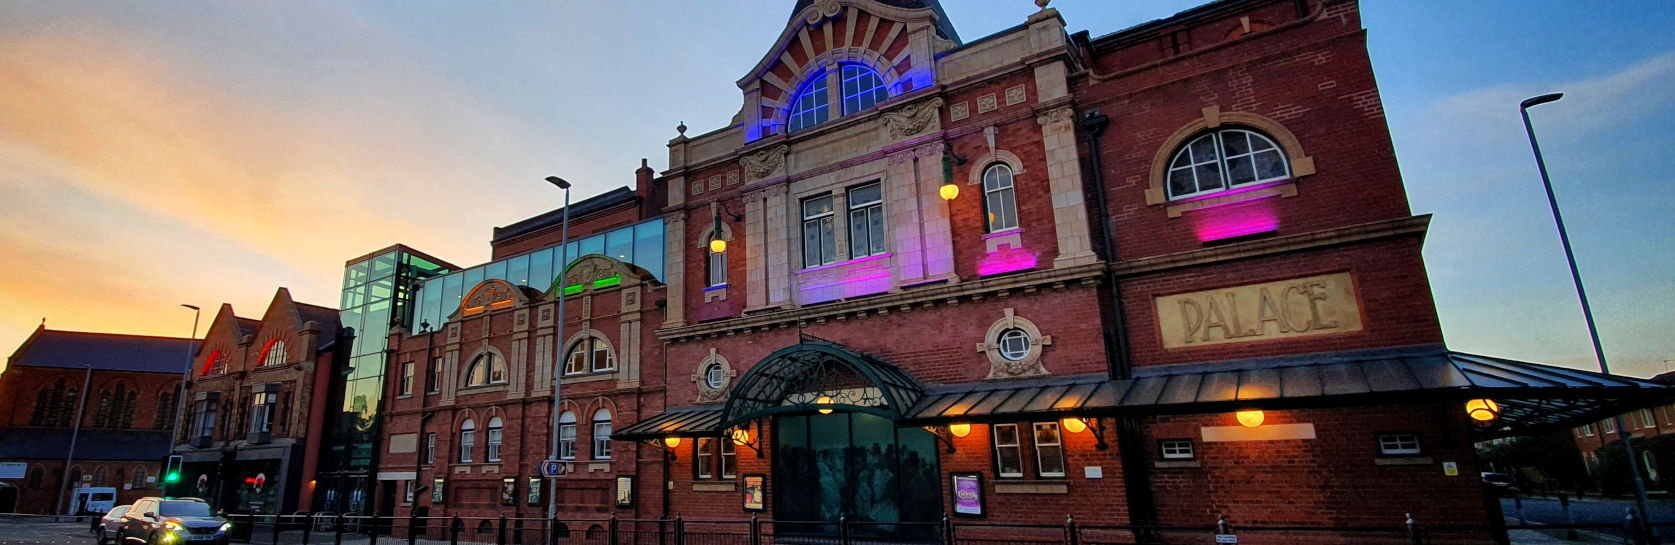 Darlington Hippodrome lit up for Pride Month